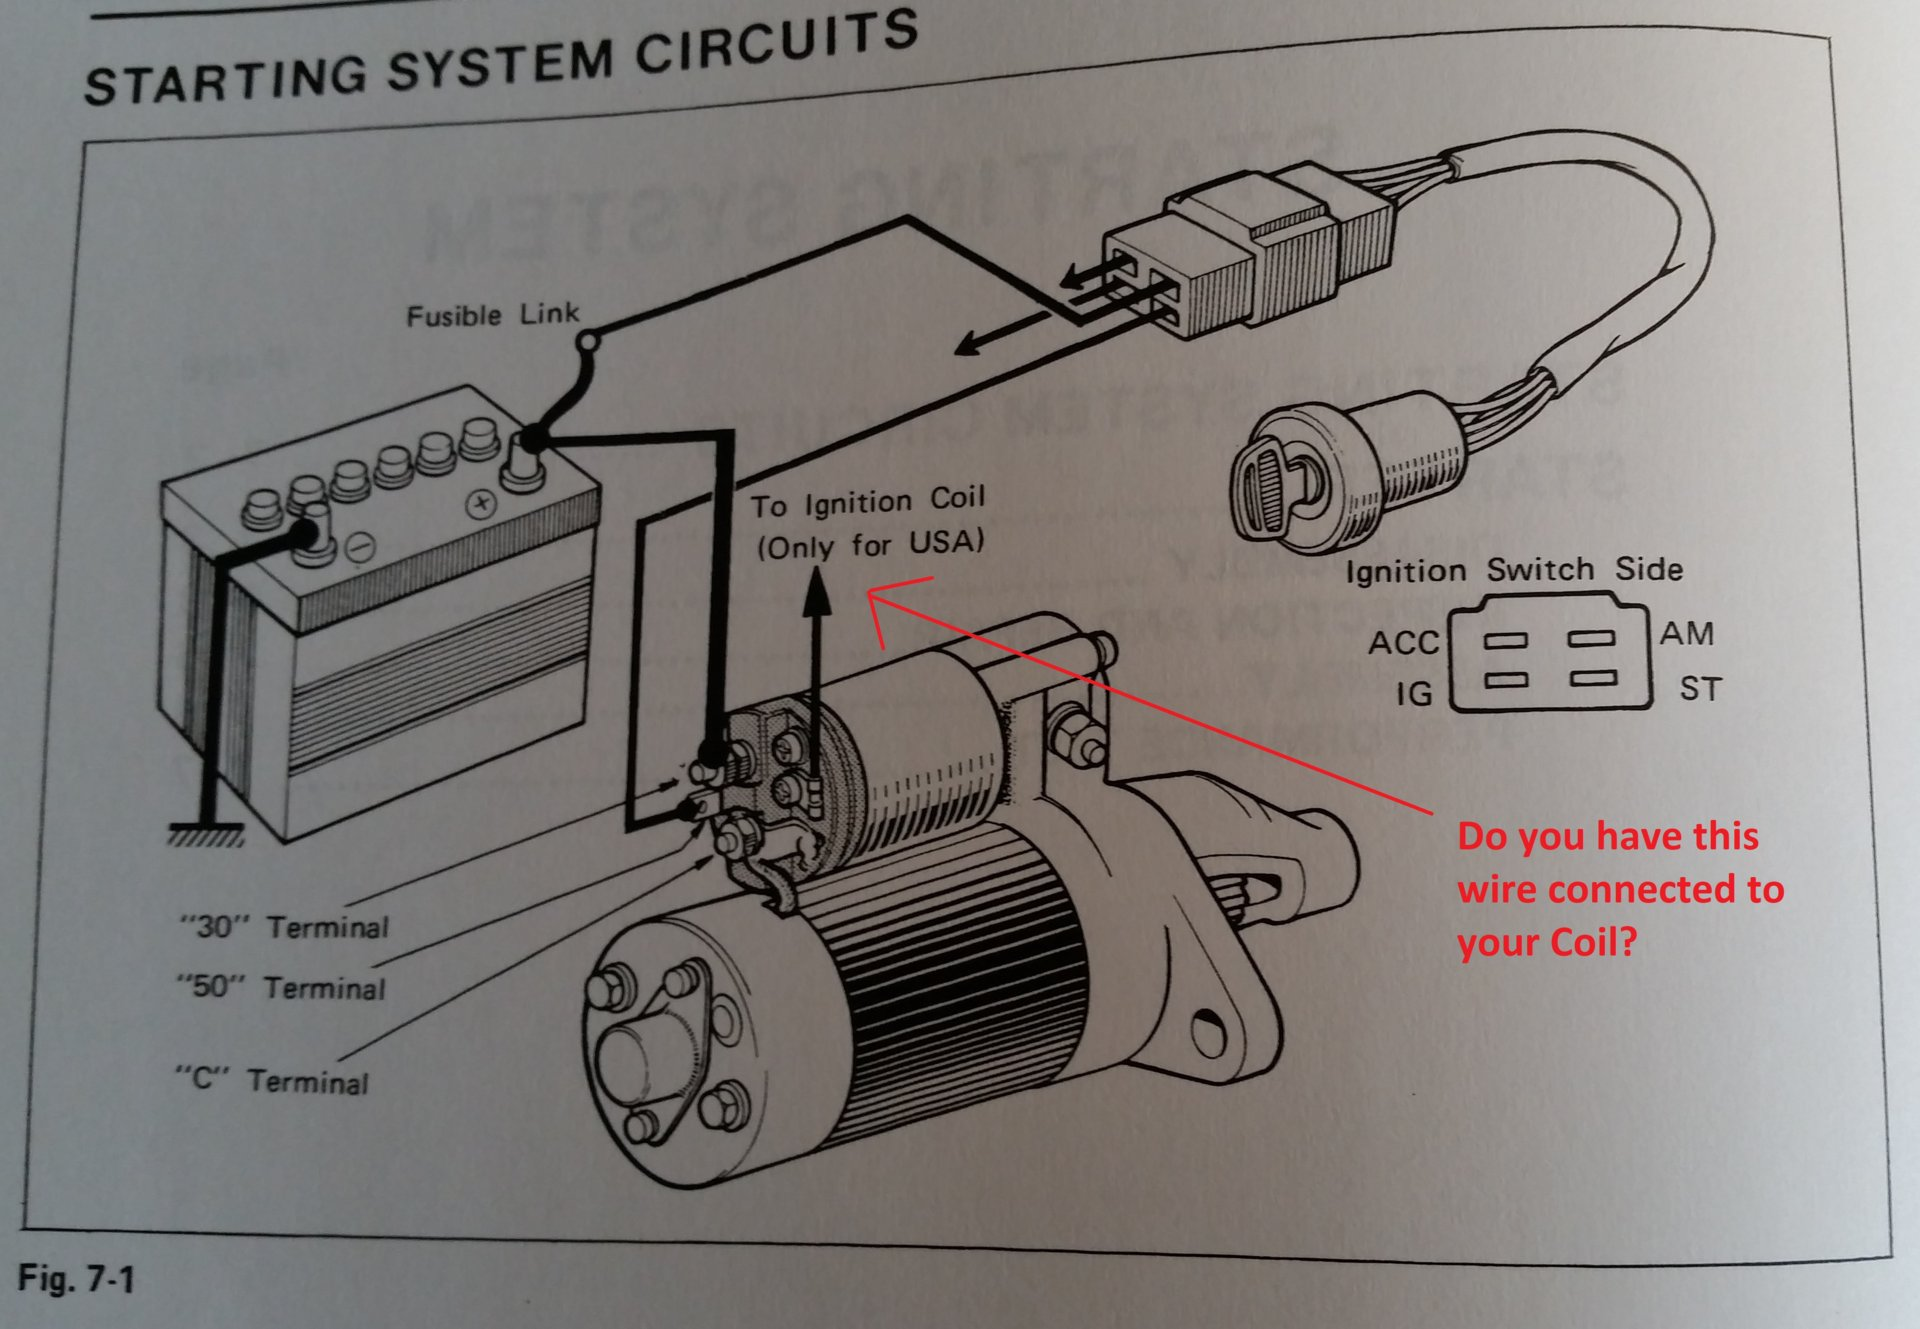 Fig Fig 1 Starting System Circuit Diagram